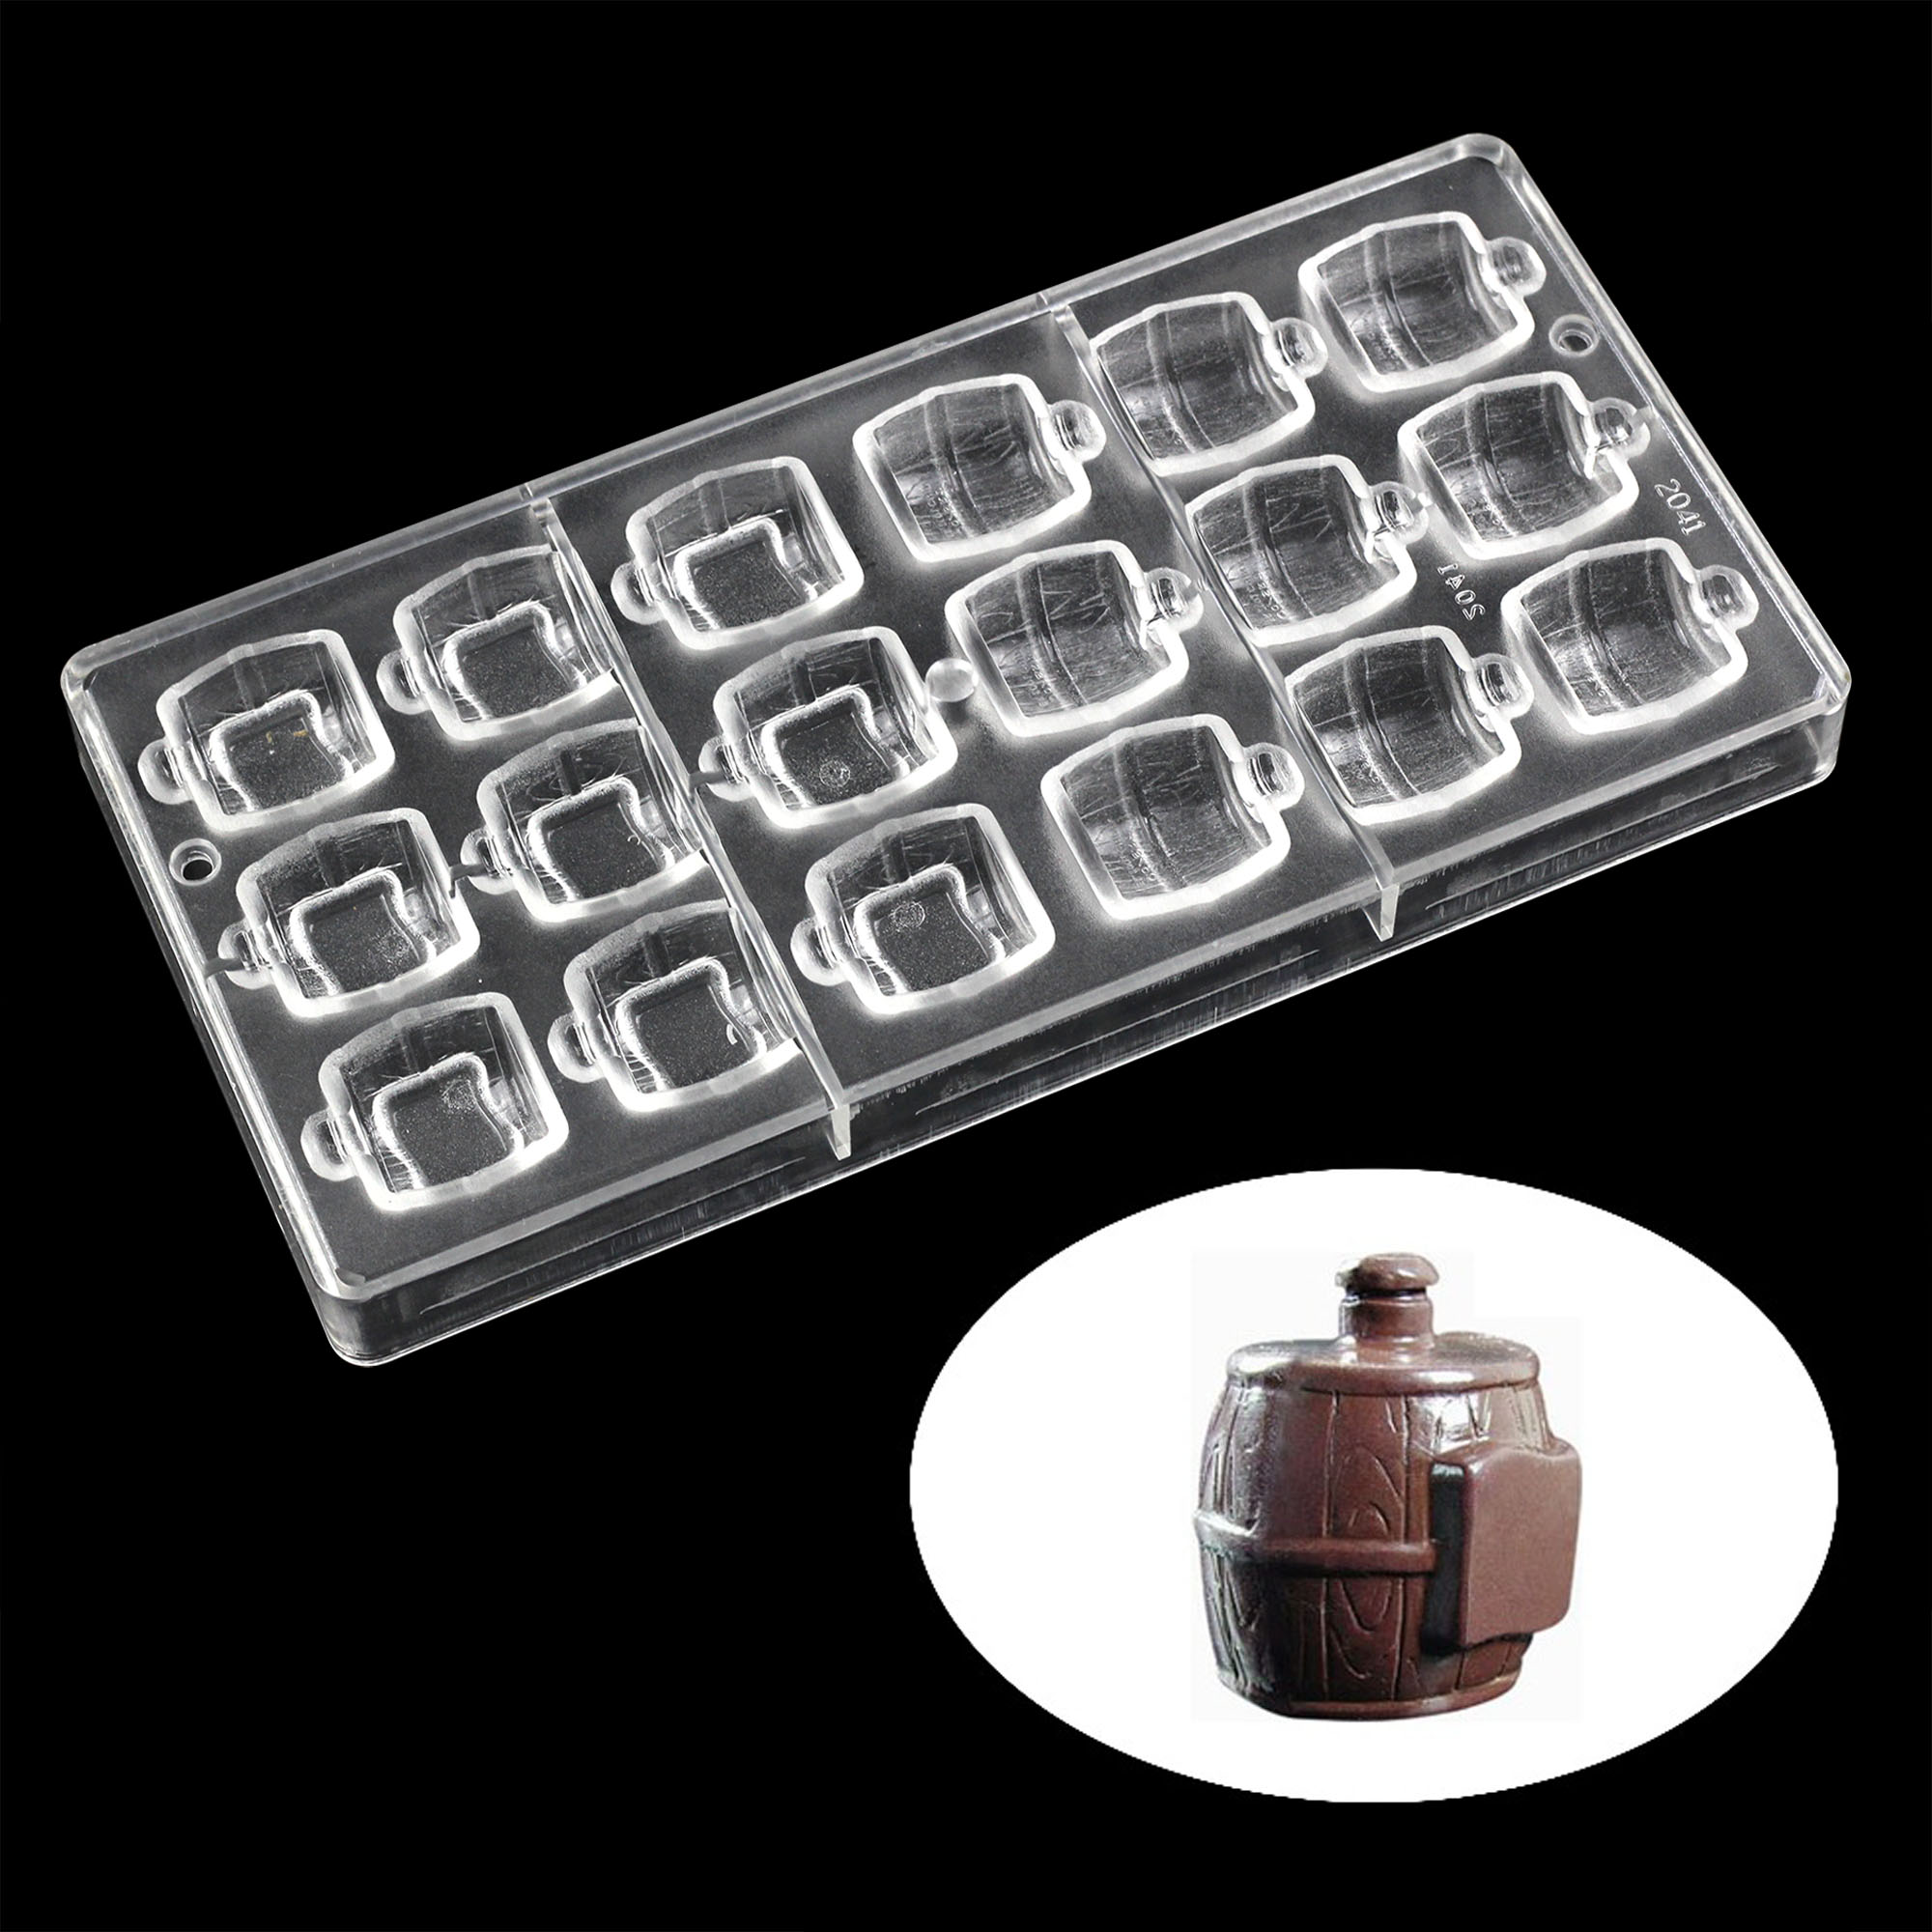 3D Wein barrel Förmigen Polycarbonat Schokolade Mold Harte Poly-carbonate Candy Mould Küche Backen candy werkzeuge